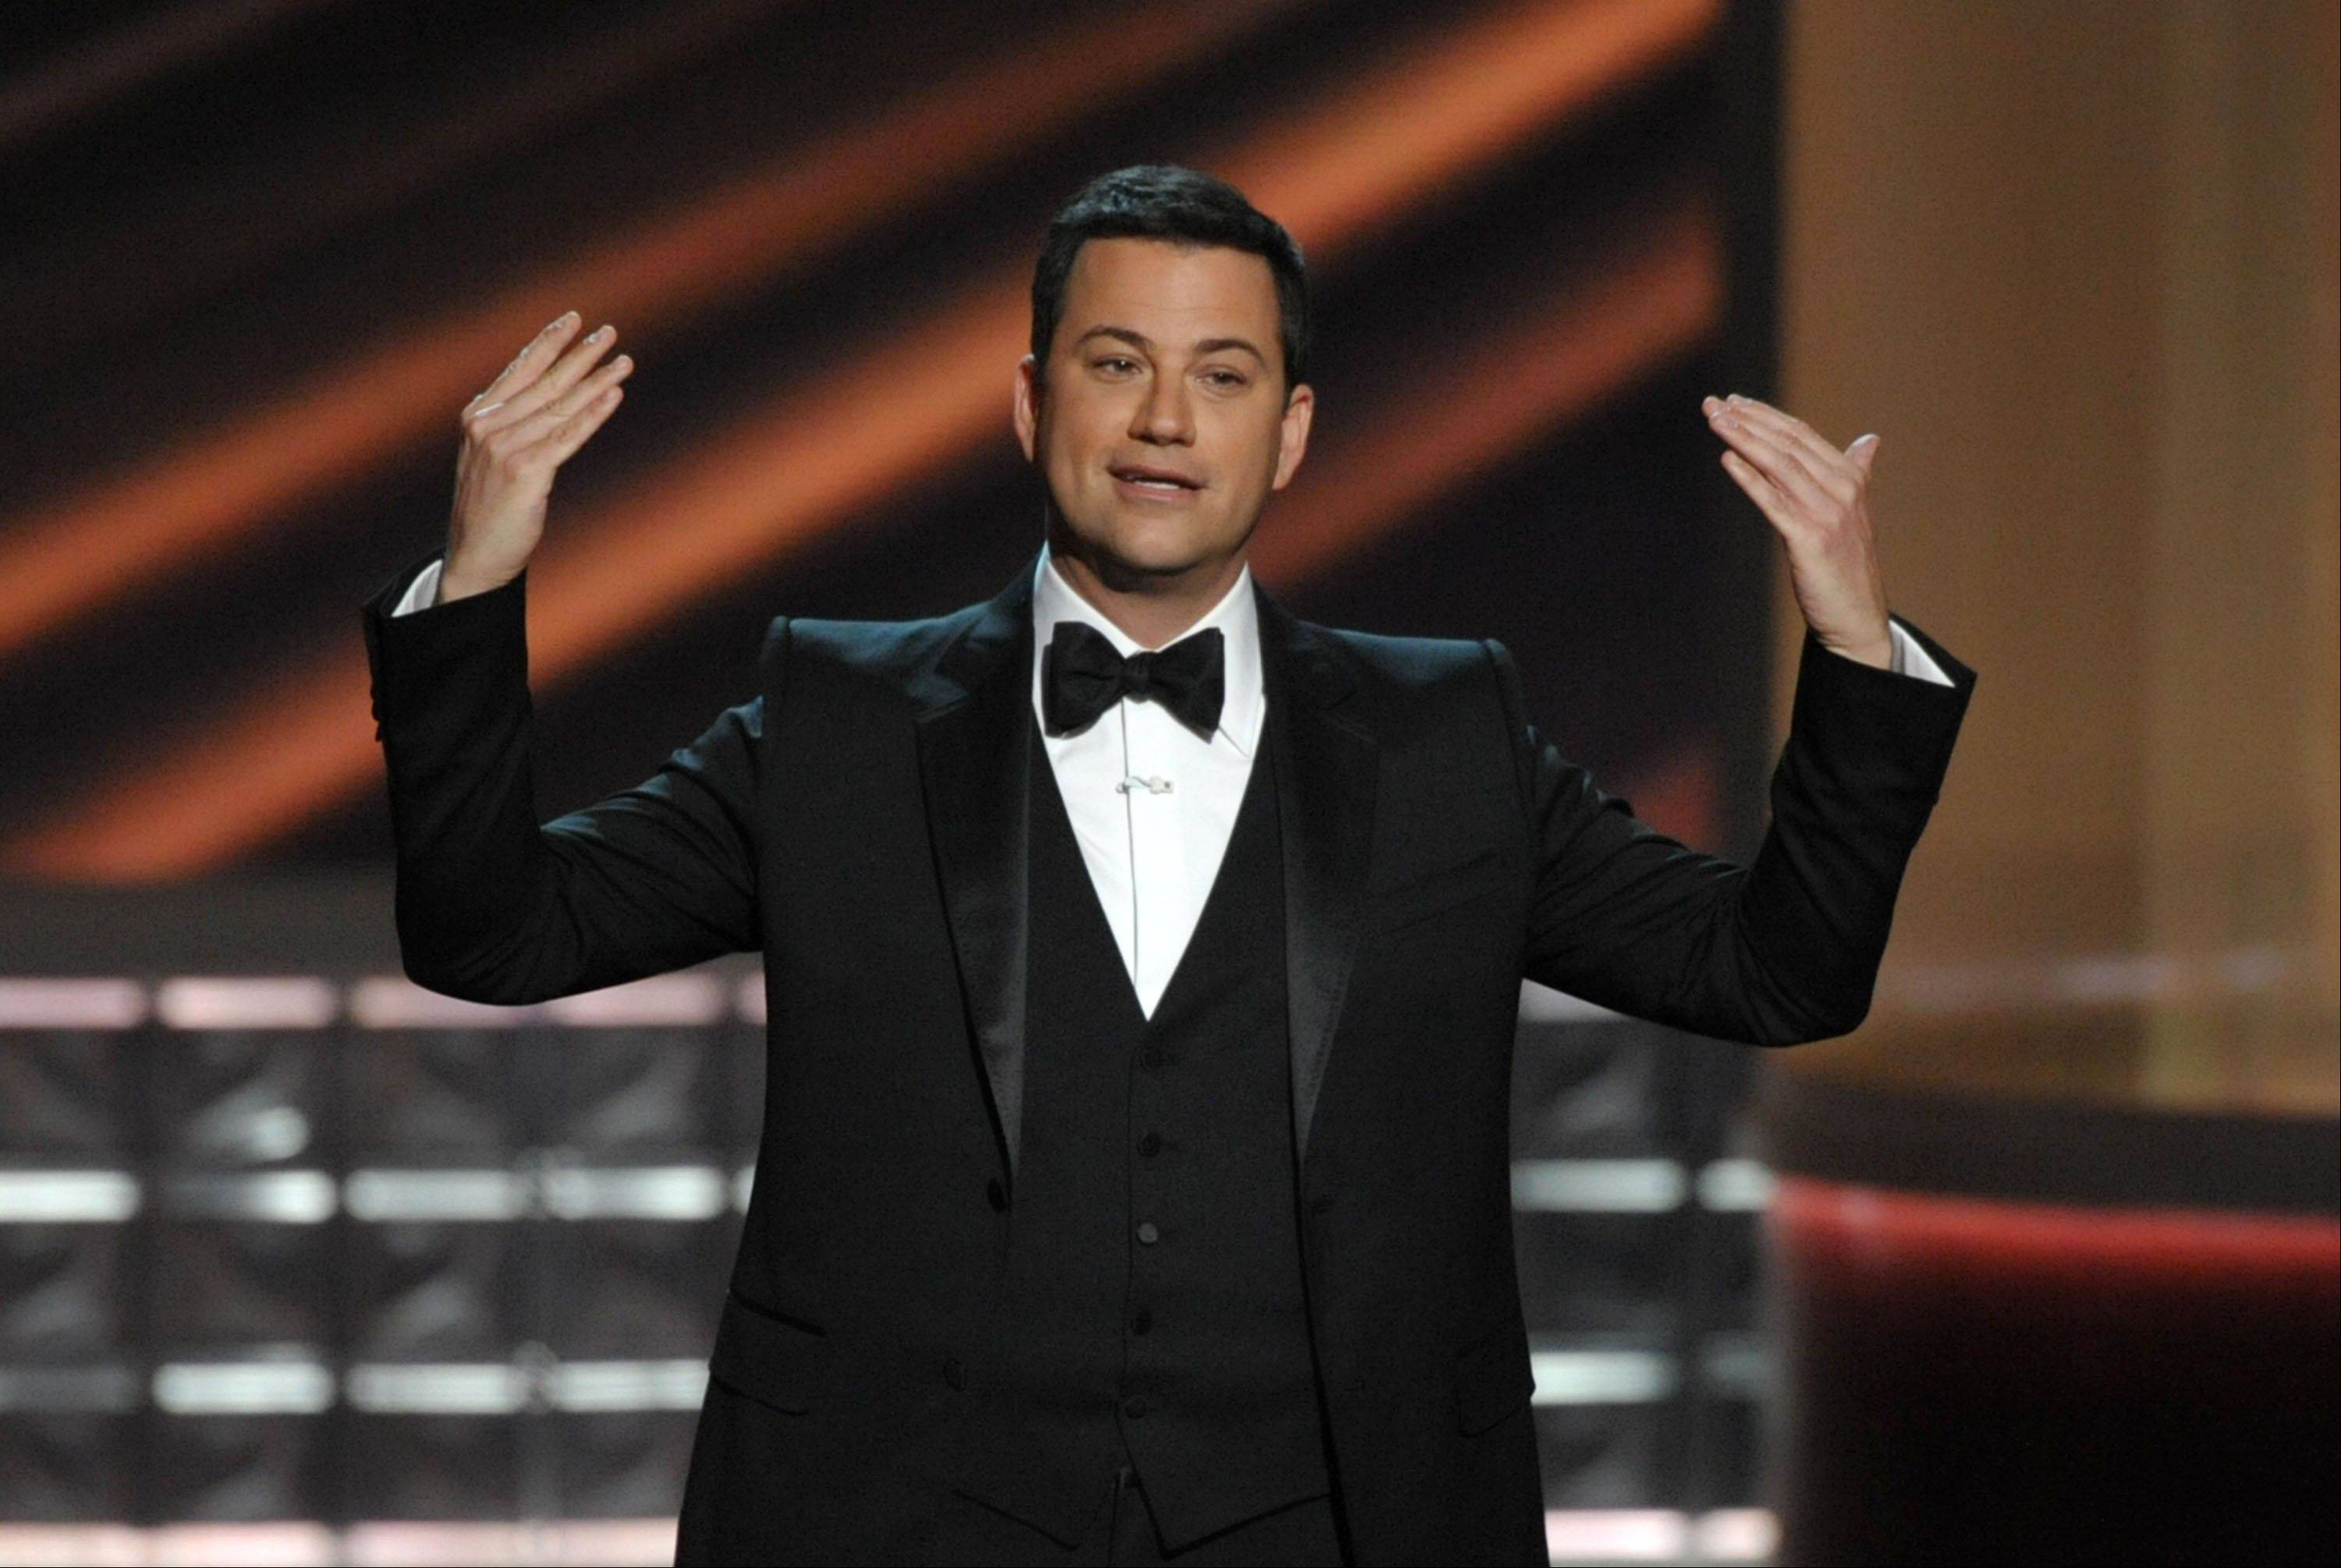 Jimmy Kimmel hosted the 64th Primetime Emmy Awards at the Nokia Theatre on Sunday in Los Angeles.